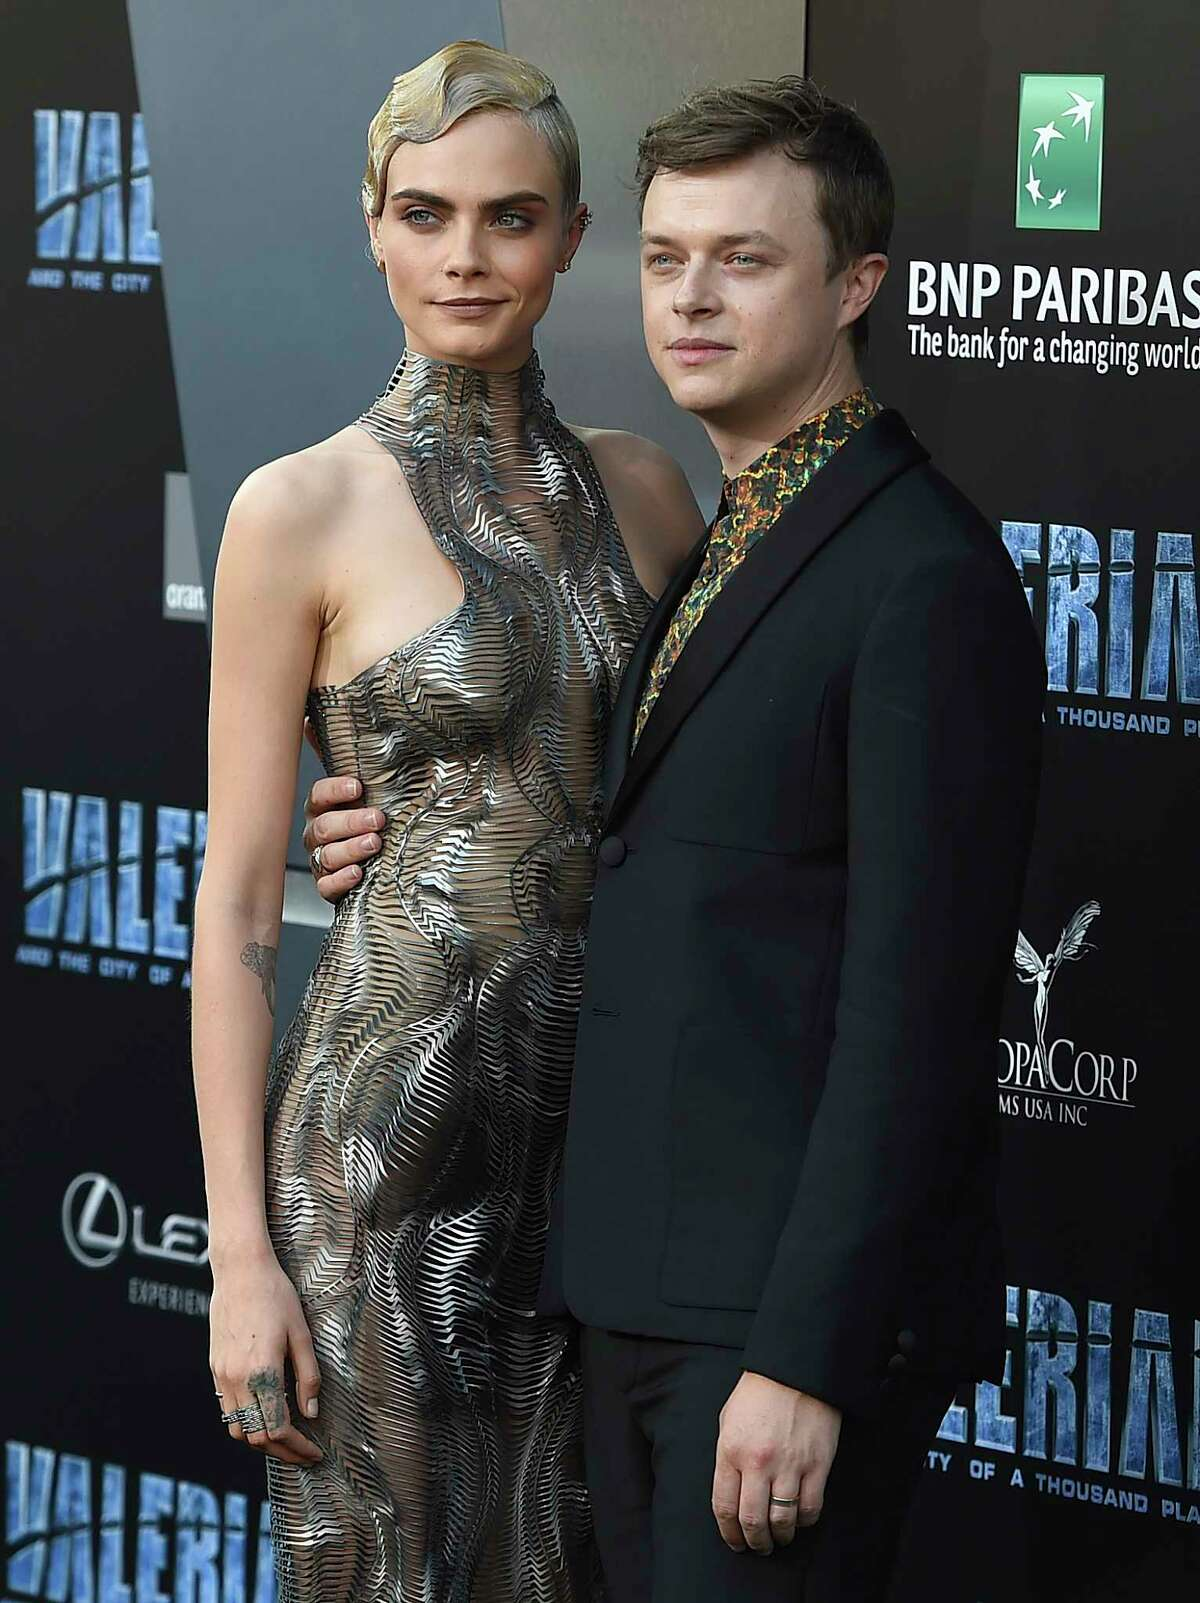 """Cara Delevingne and Dane DeHaan arrive at the LA Premiere of """"Valerian and the City of a Thousand Planets"""" at the TCL Chinese Theatre on Monday, July 17, 2017, in Los Angeles. (Photo by Jordan Strauss/Invision/AP) ORG XMIT: CAJS111"""